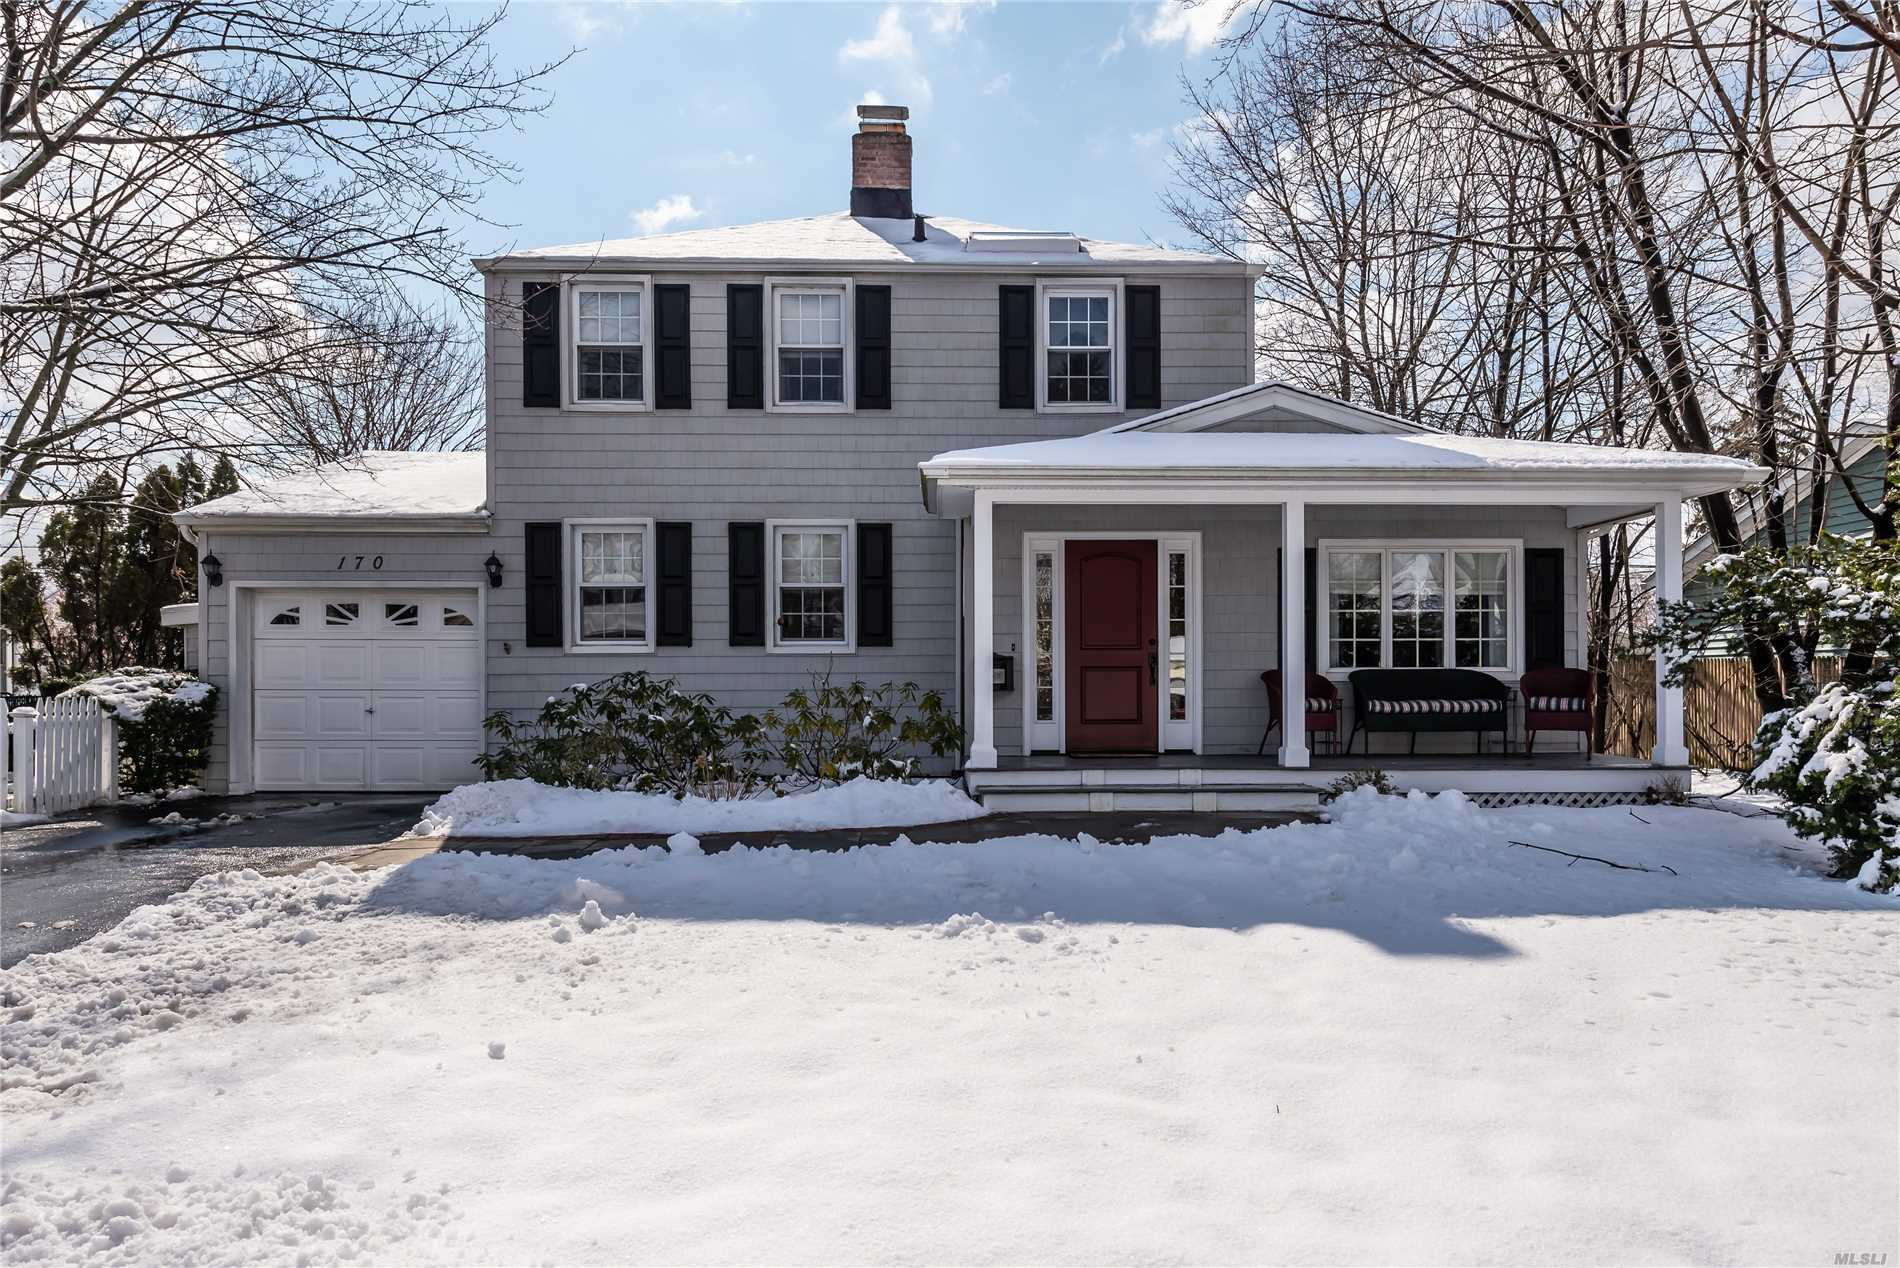 Pristine 3 Bedroom, 2 Bath Home In The Carle Place School District. Eat In Kitchen W/ Granite Counters And Ss Appliances. Living Room W/ Wood Burning Fp, Formal Dr, Den, Full Finished Basement, Garage, Front Porch, Close To Lirr, Highways And Shopping.